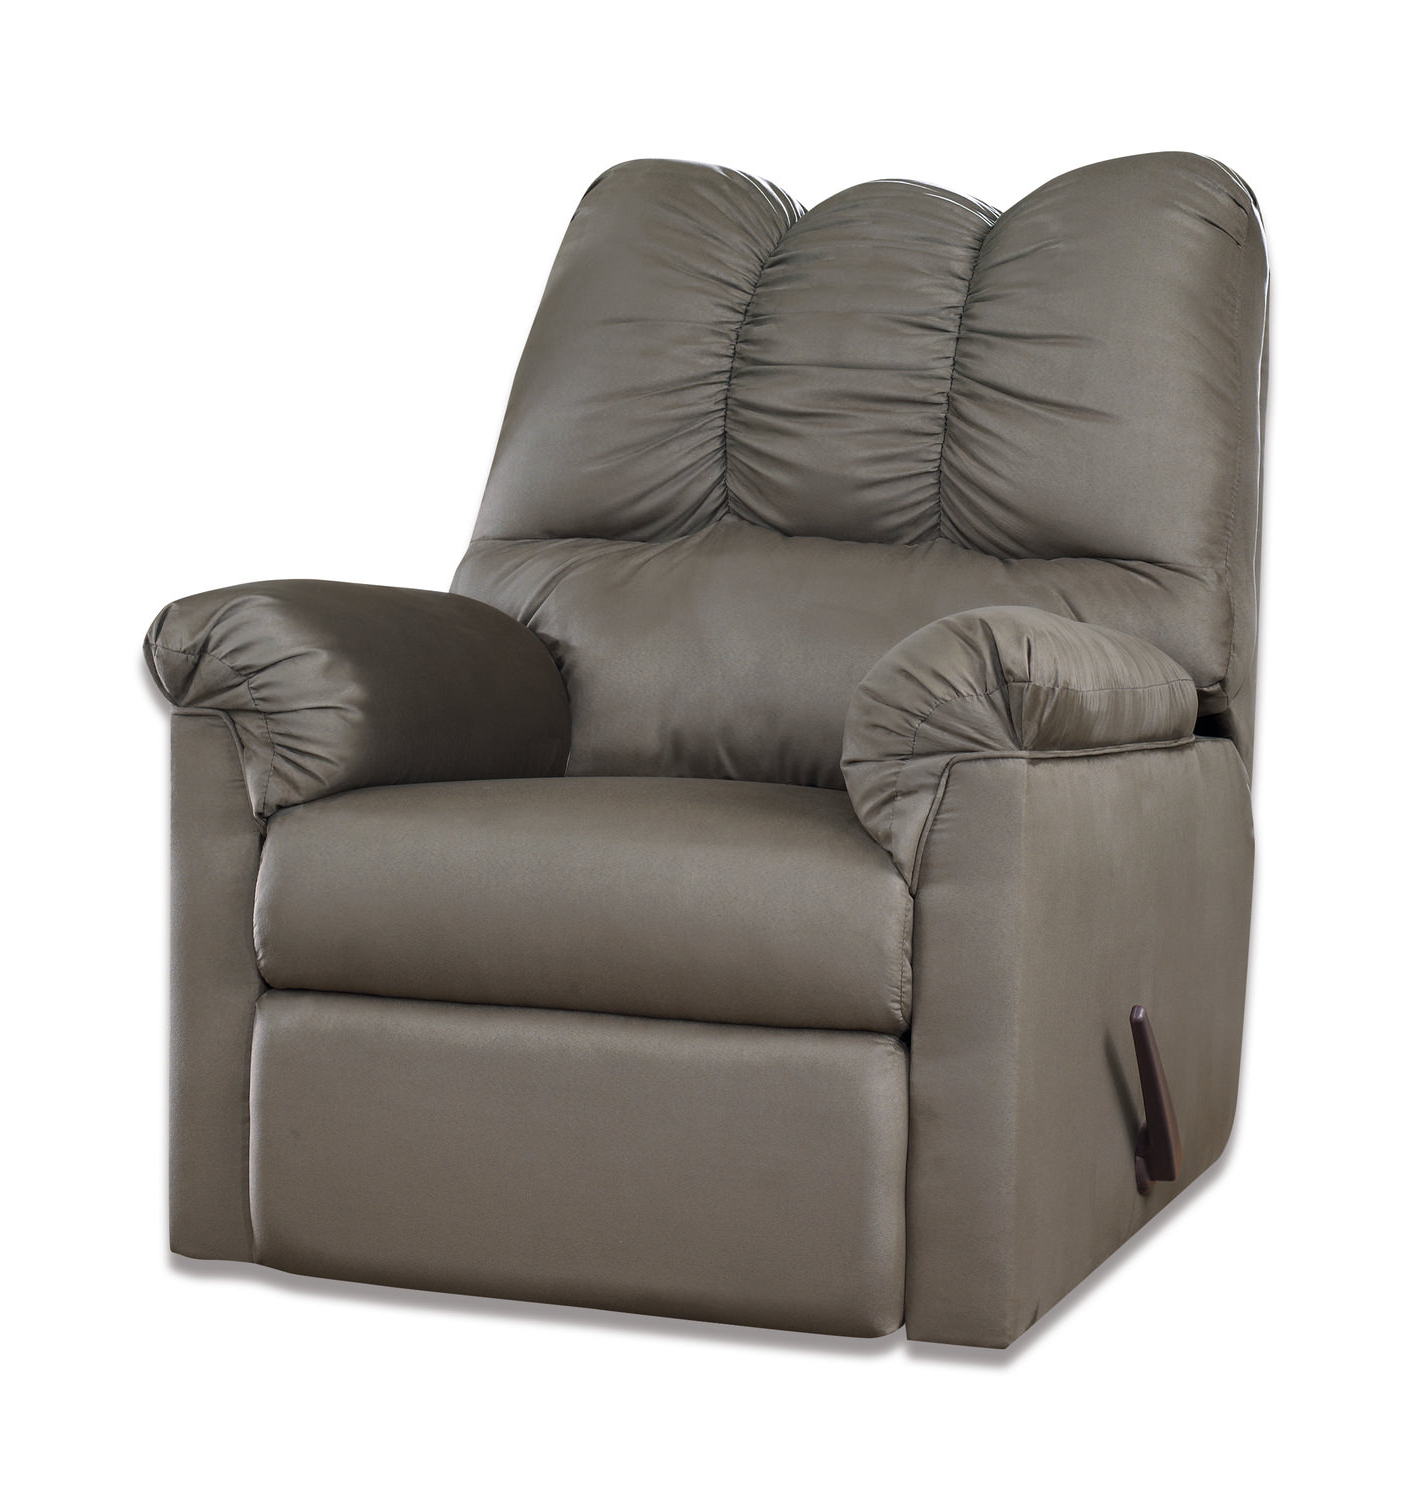 Theo Ii Swivel Chairs Inside Well Known Recliners – Leather, Rocker & Swivel – Hom Furniture (View 12 of 20)